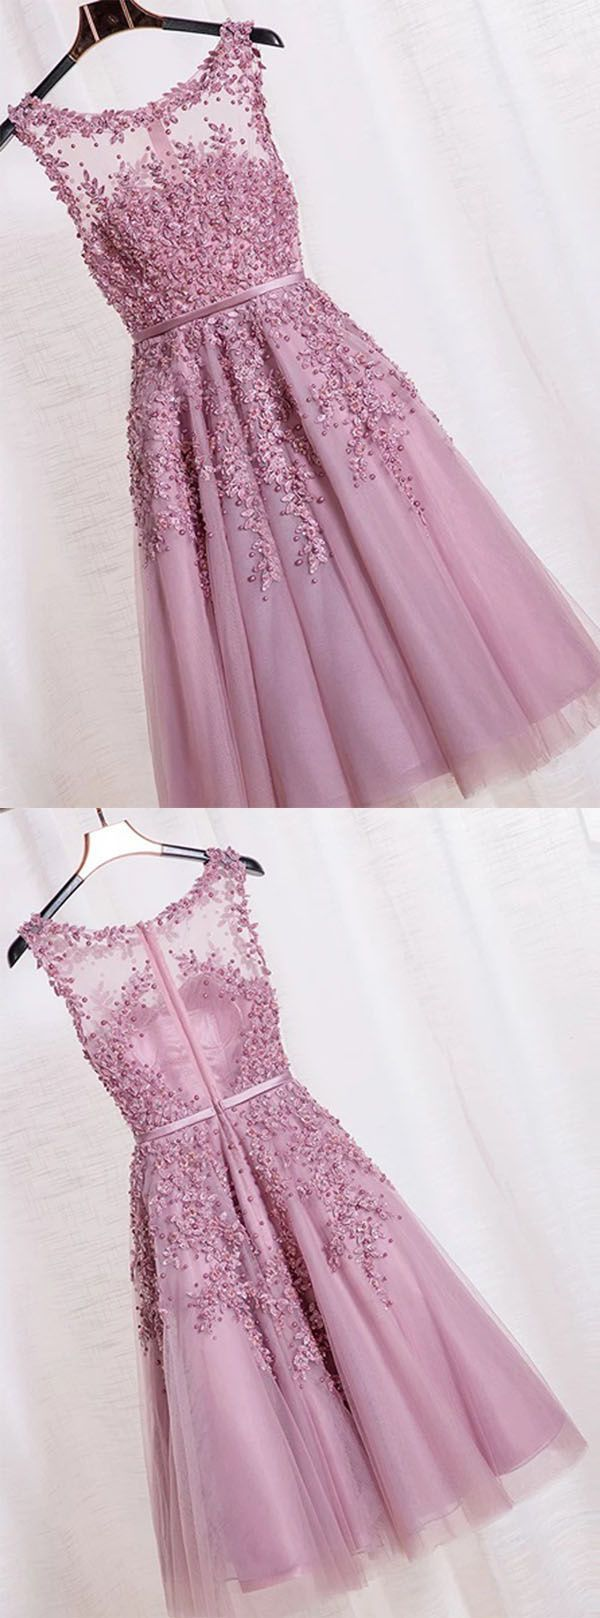 Reminds me of the dress Daisy Buchanan wore when she saw Gatsby ...